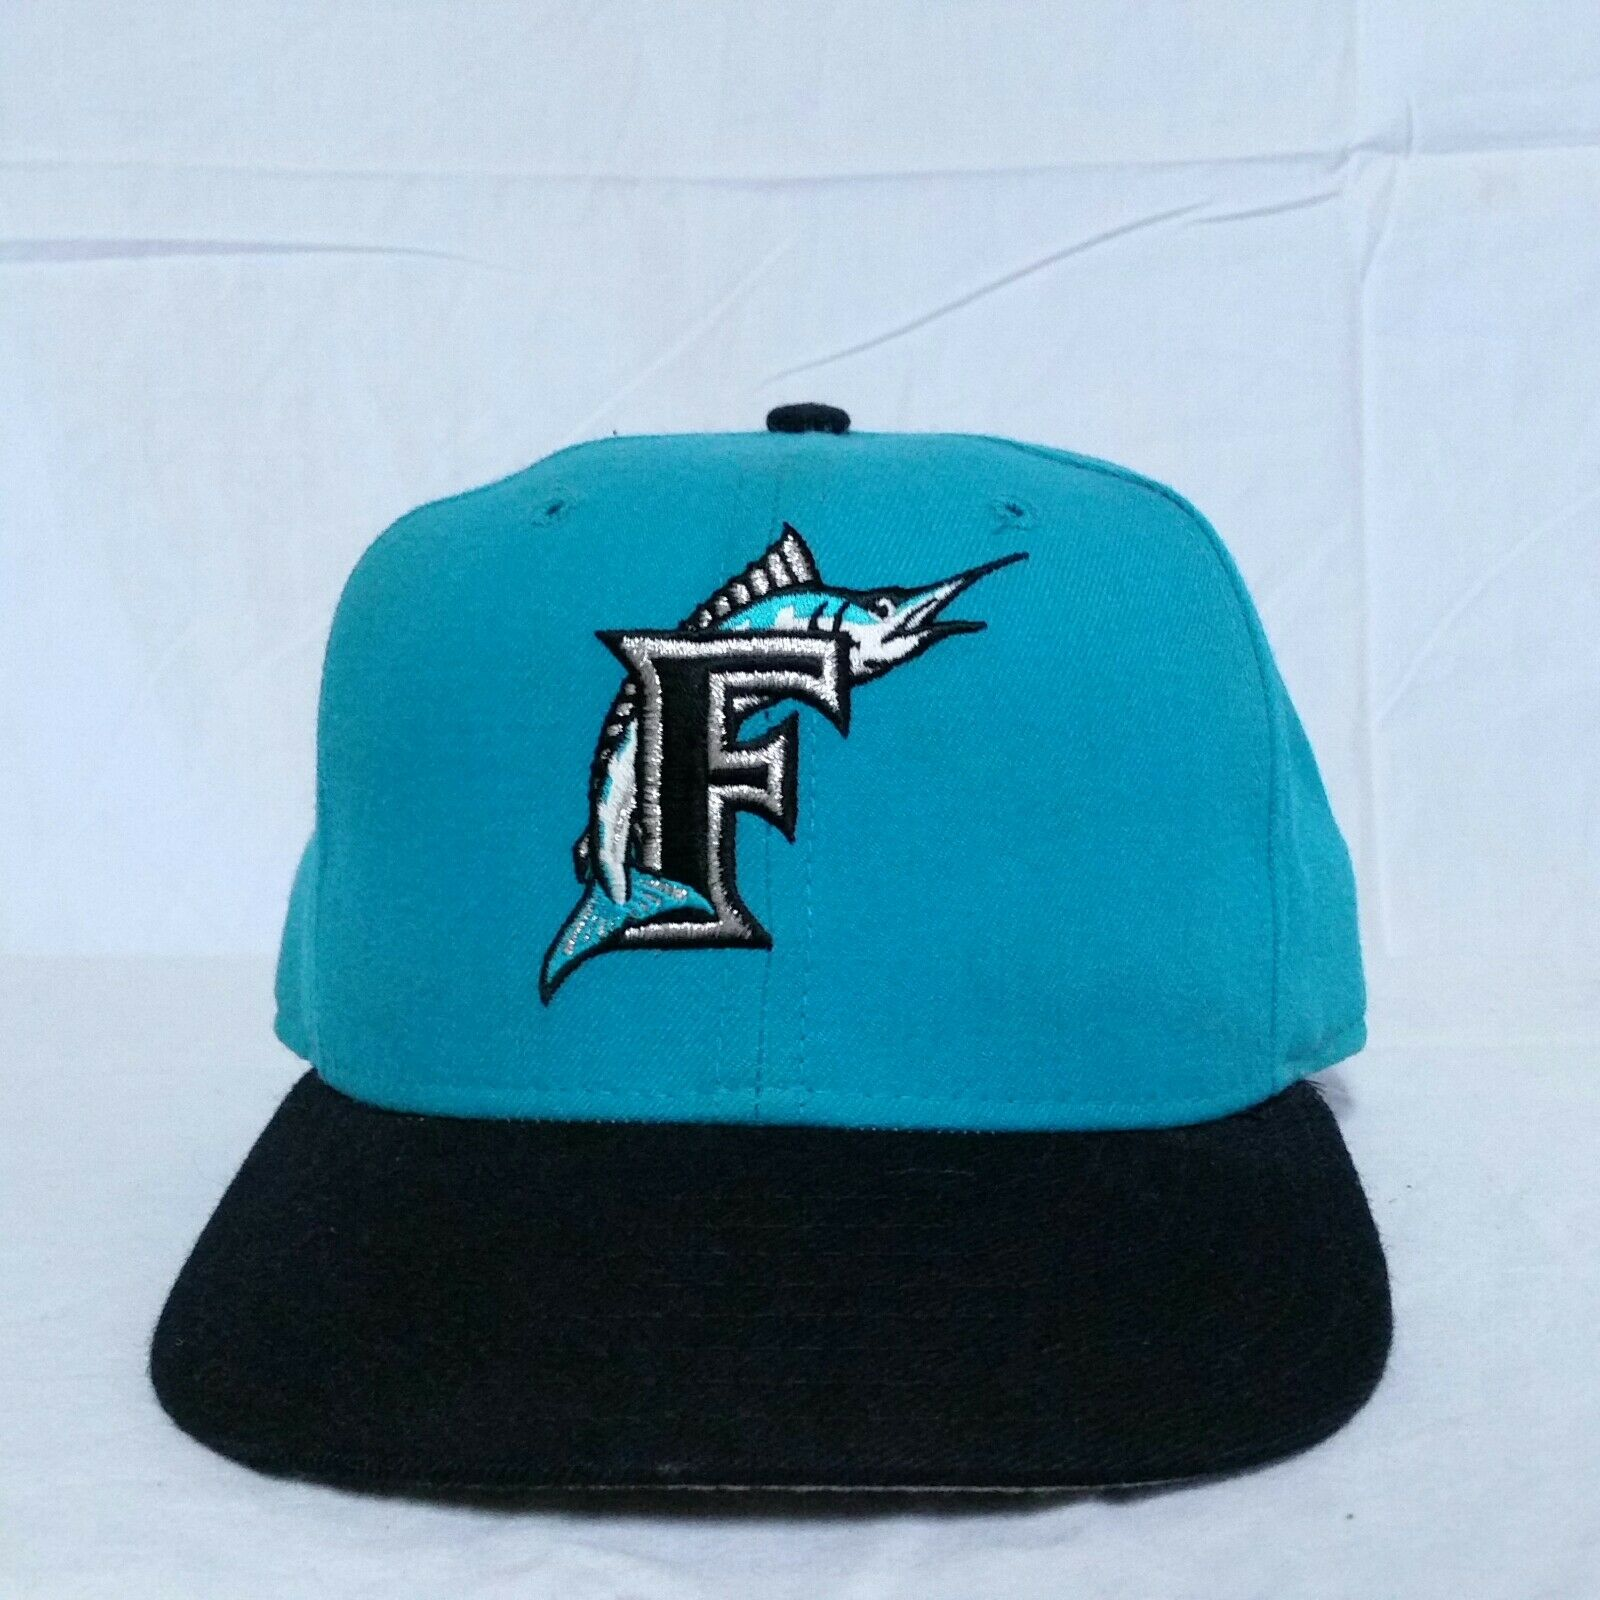 VTG Florida Marlins New Era Fitted Collection Hat 7 1/4 Diamond Collection Fitted Pro Model Cap 39609c